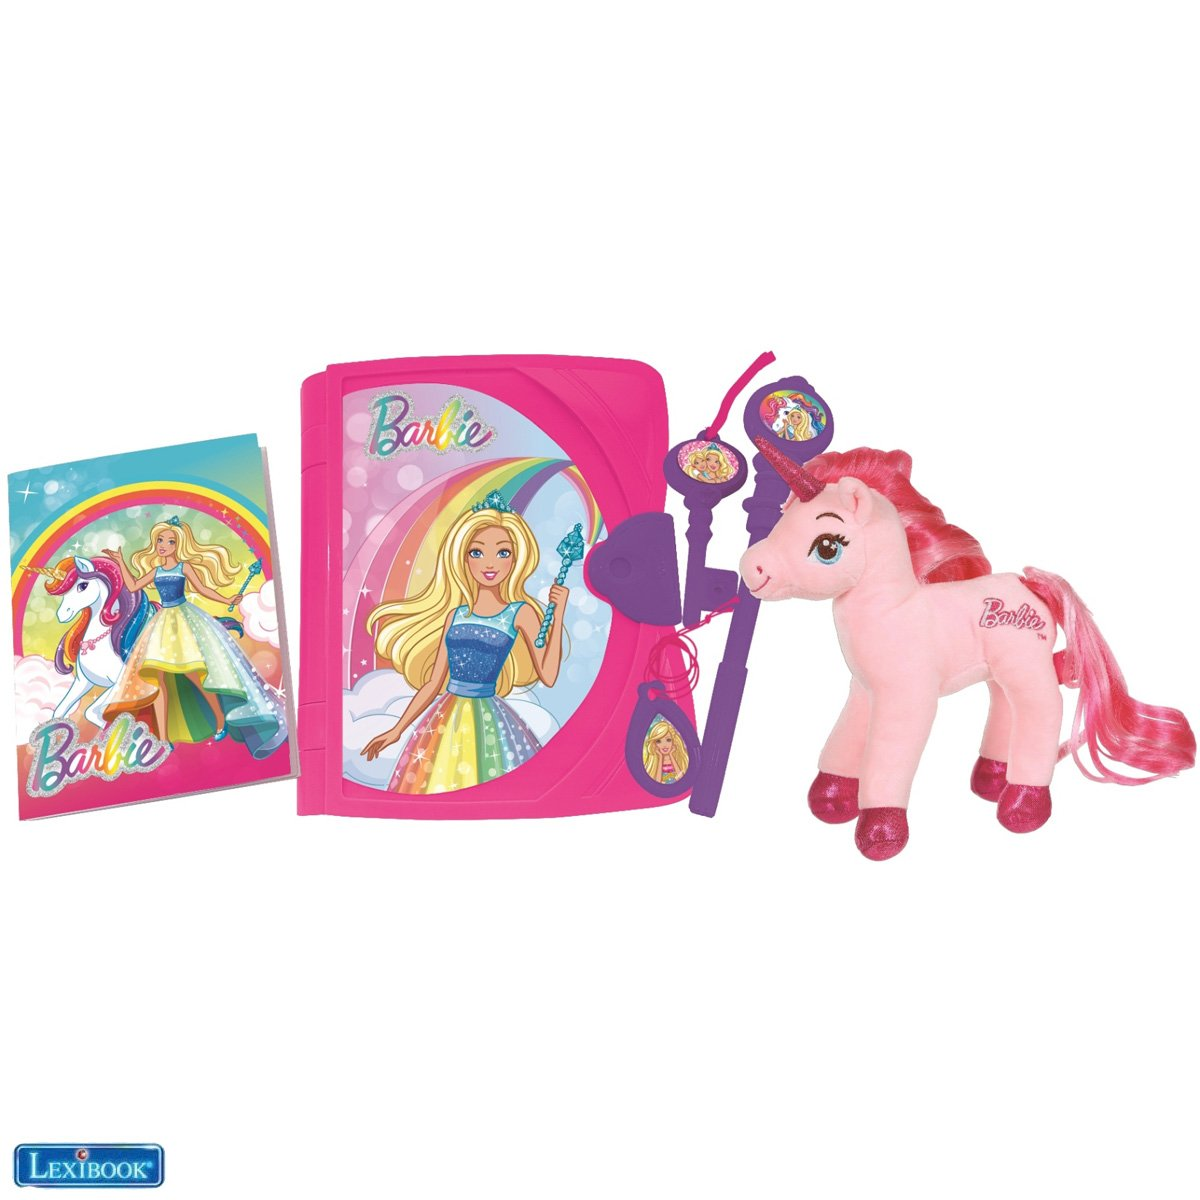 Lexibook - Barbie Electronic Secret Diary with a Unicorn plush and accessories (SD15BBY)